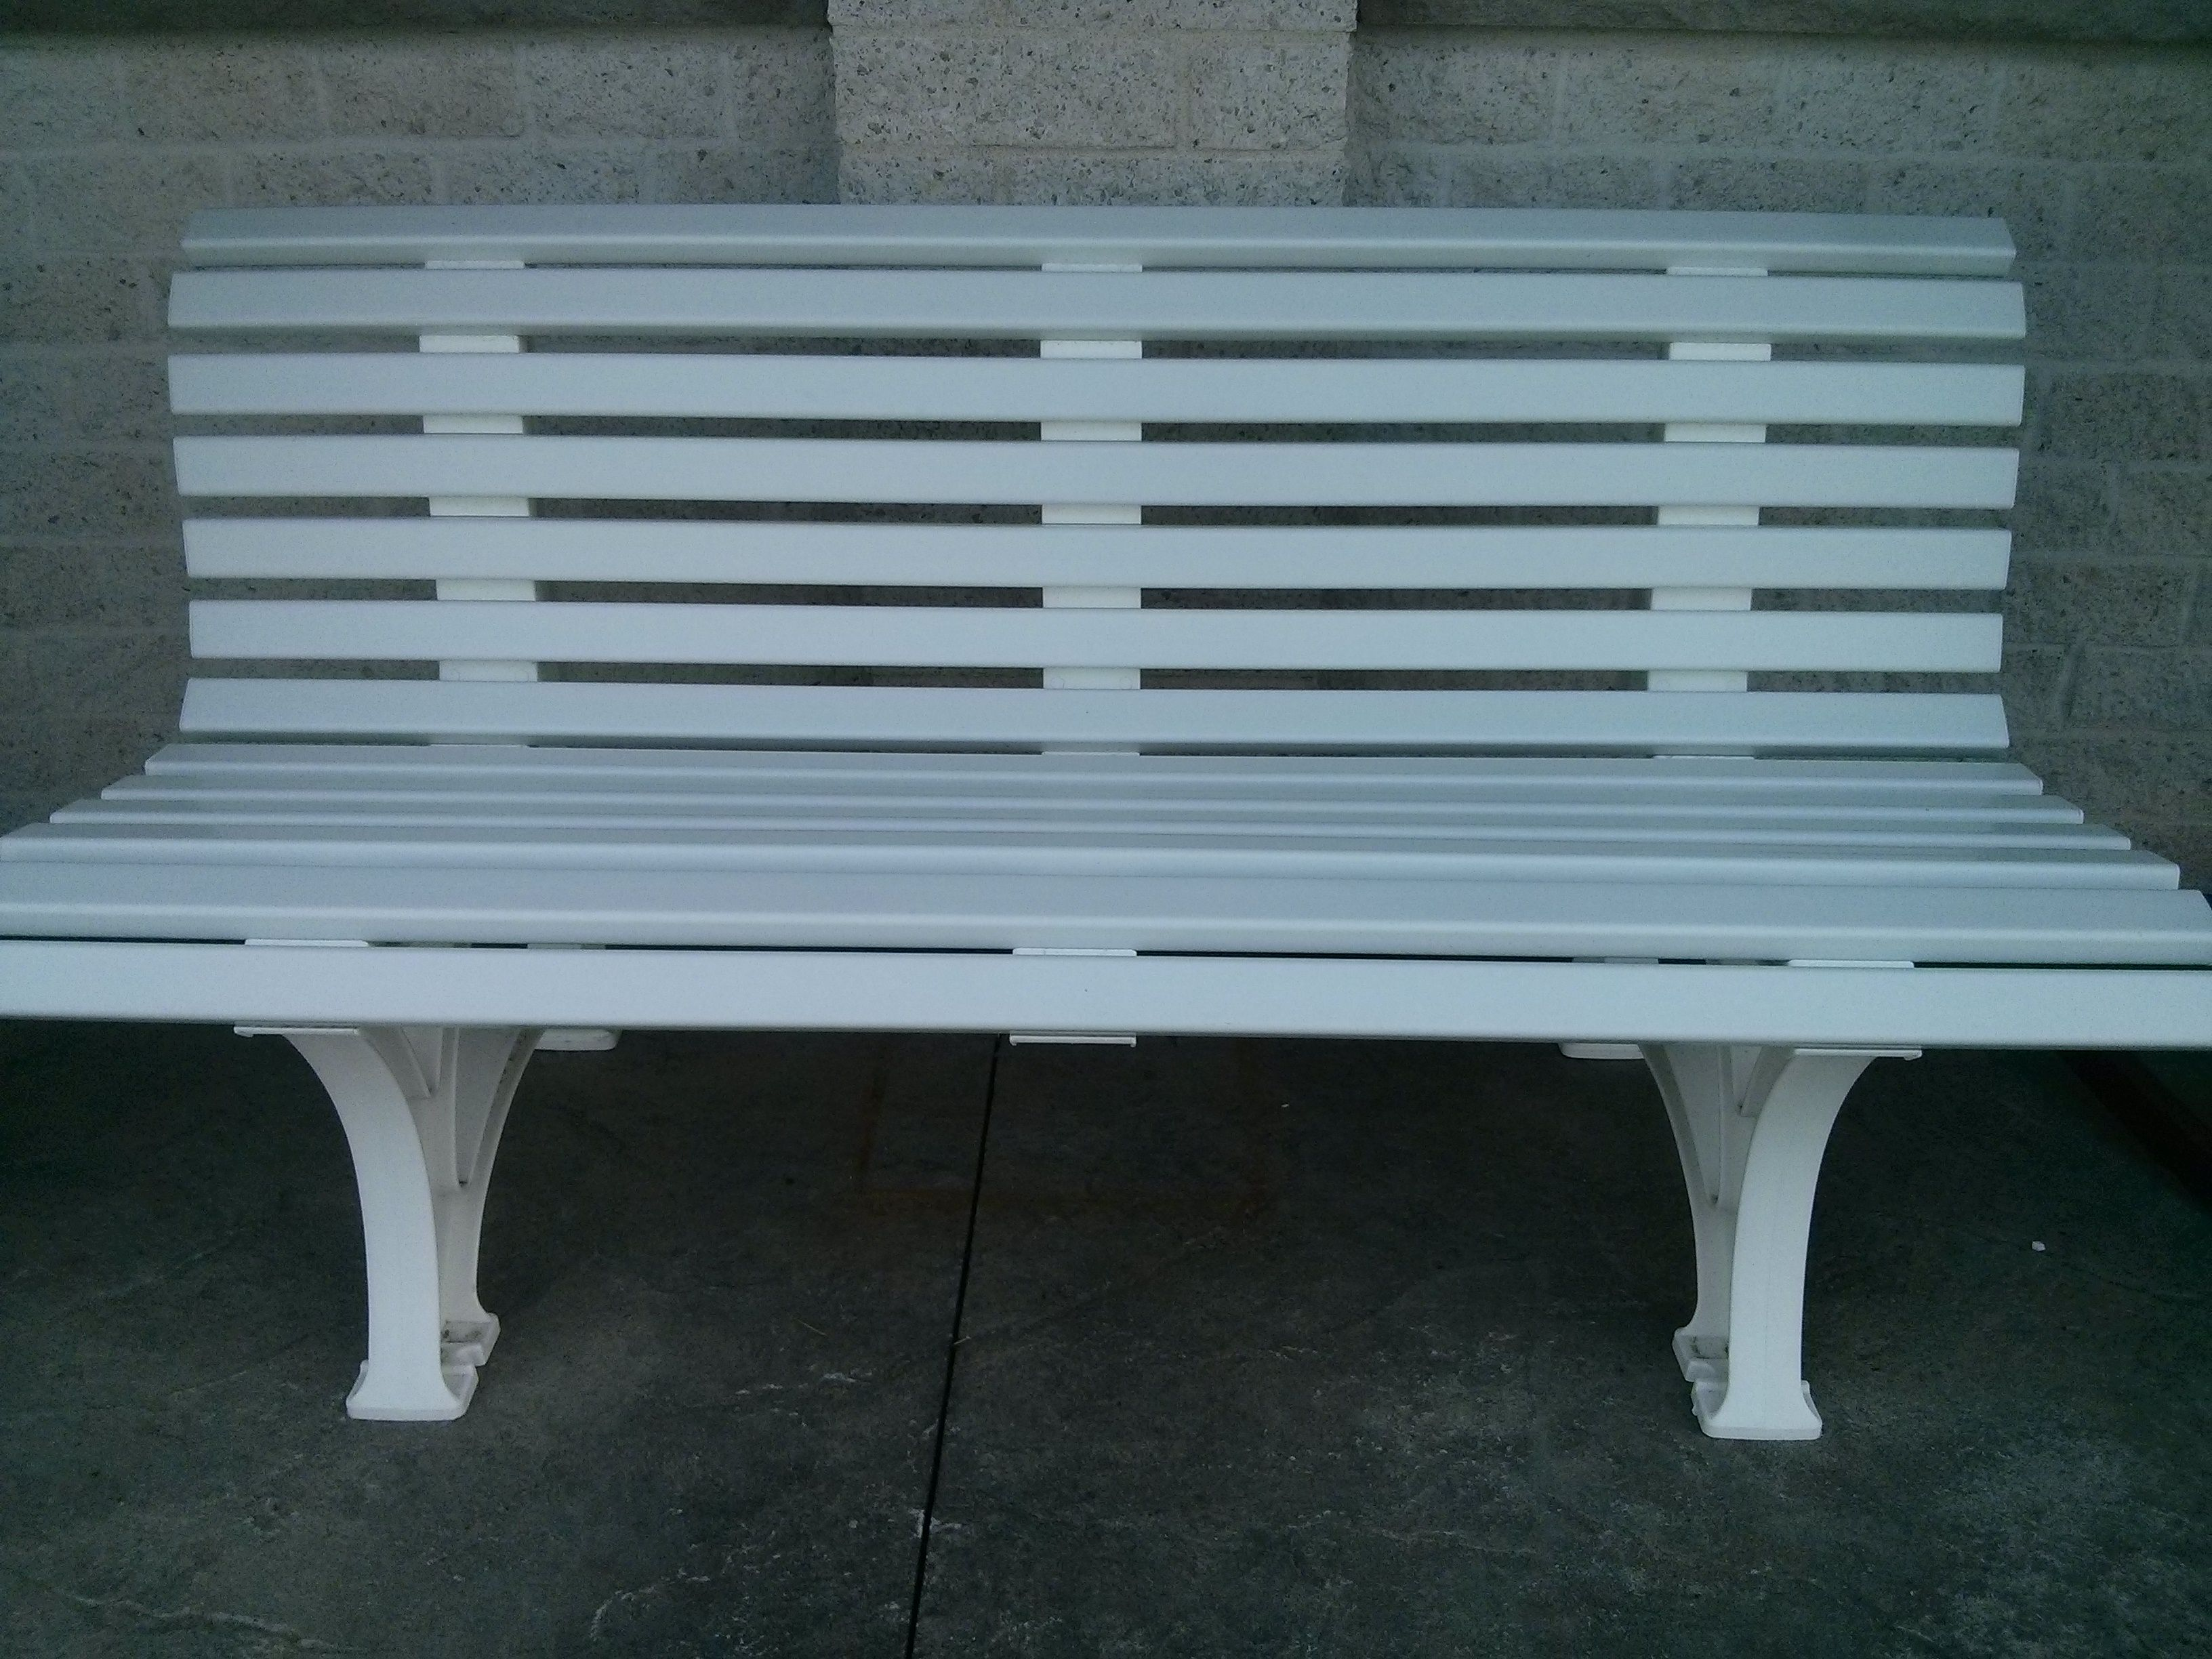 From Kettler S Wicker Garden Furniture Range Ona Awhoite Background - White 5 bench